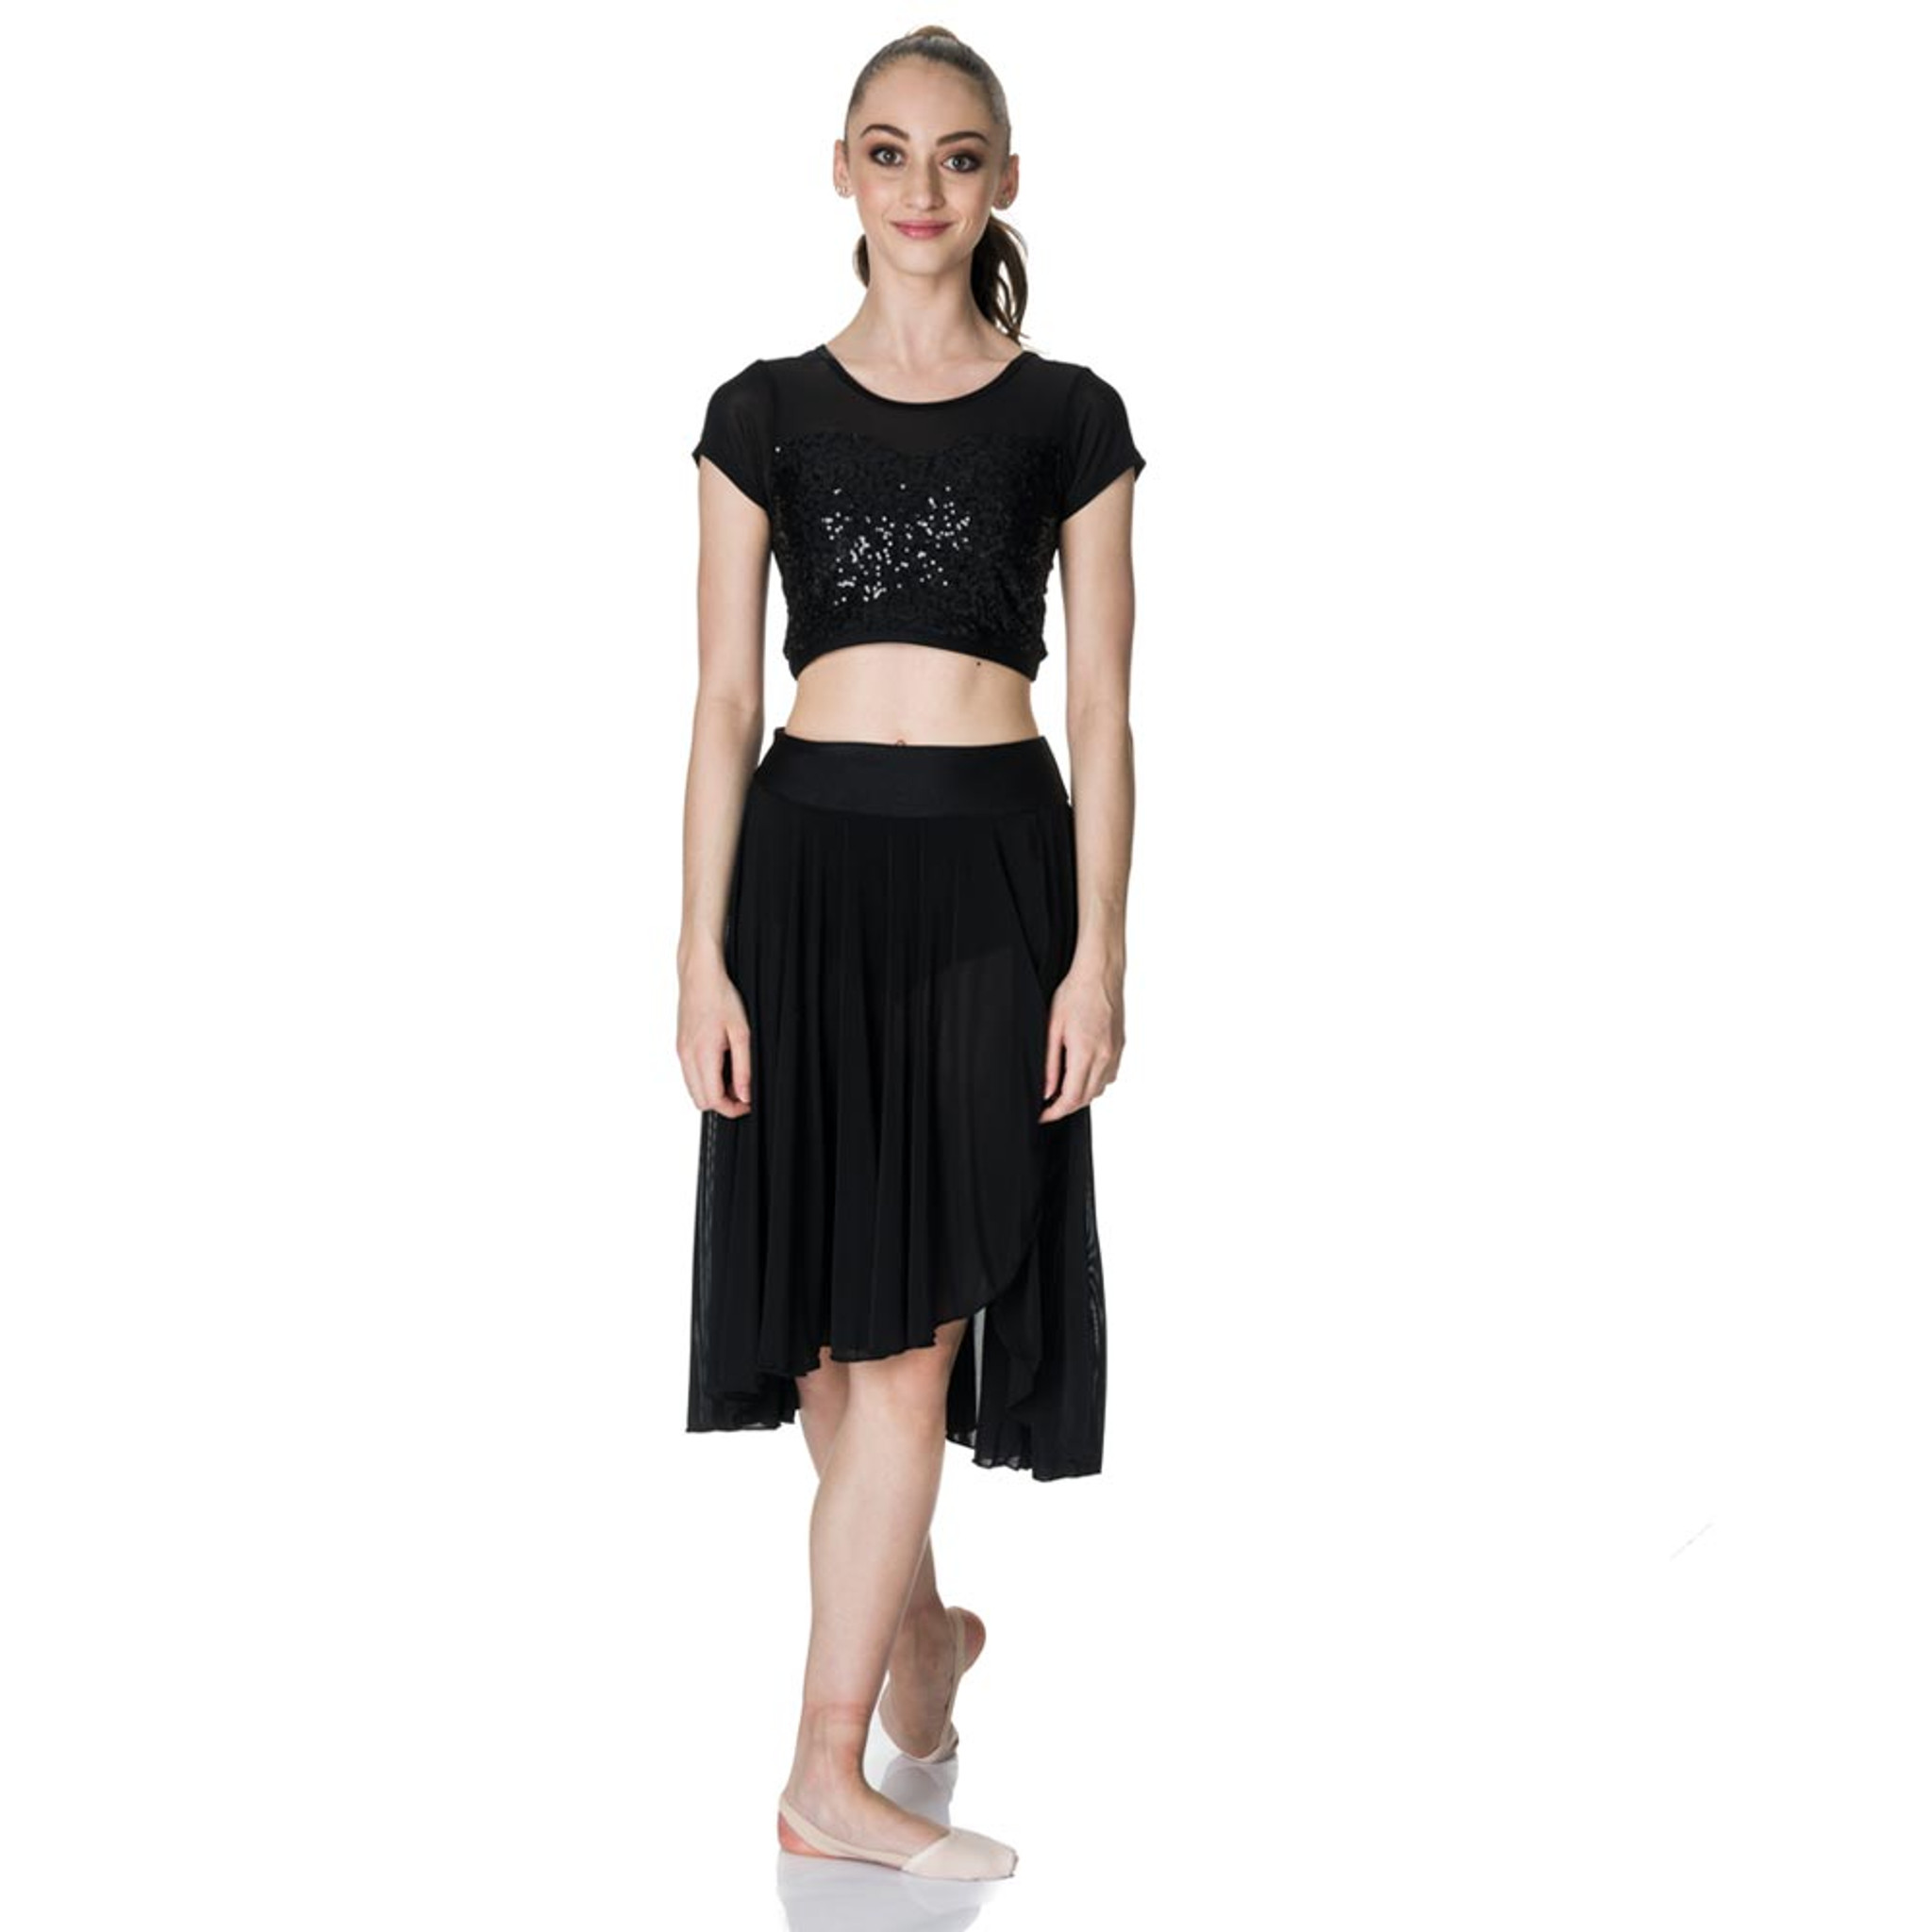 Studio 7 Dancewear Attitude Sequin Crop Top Ladies